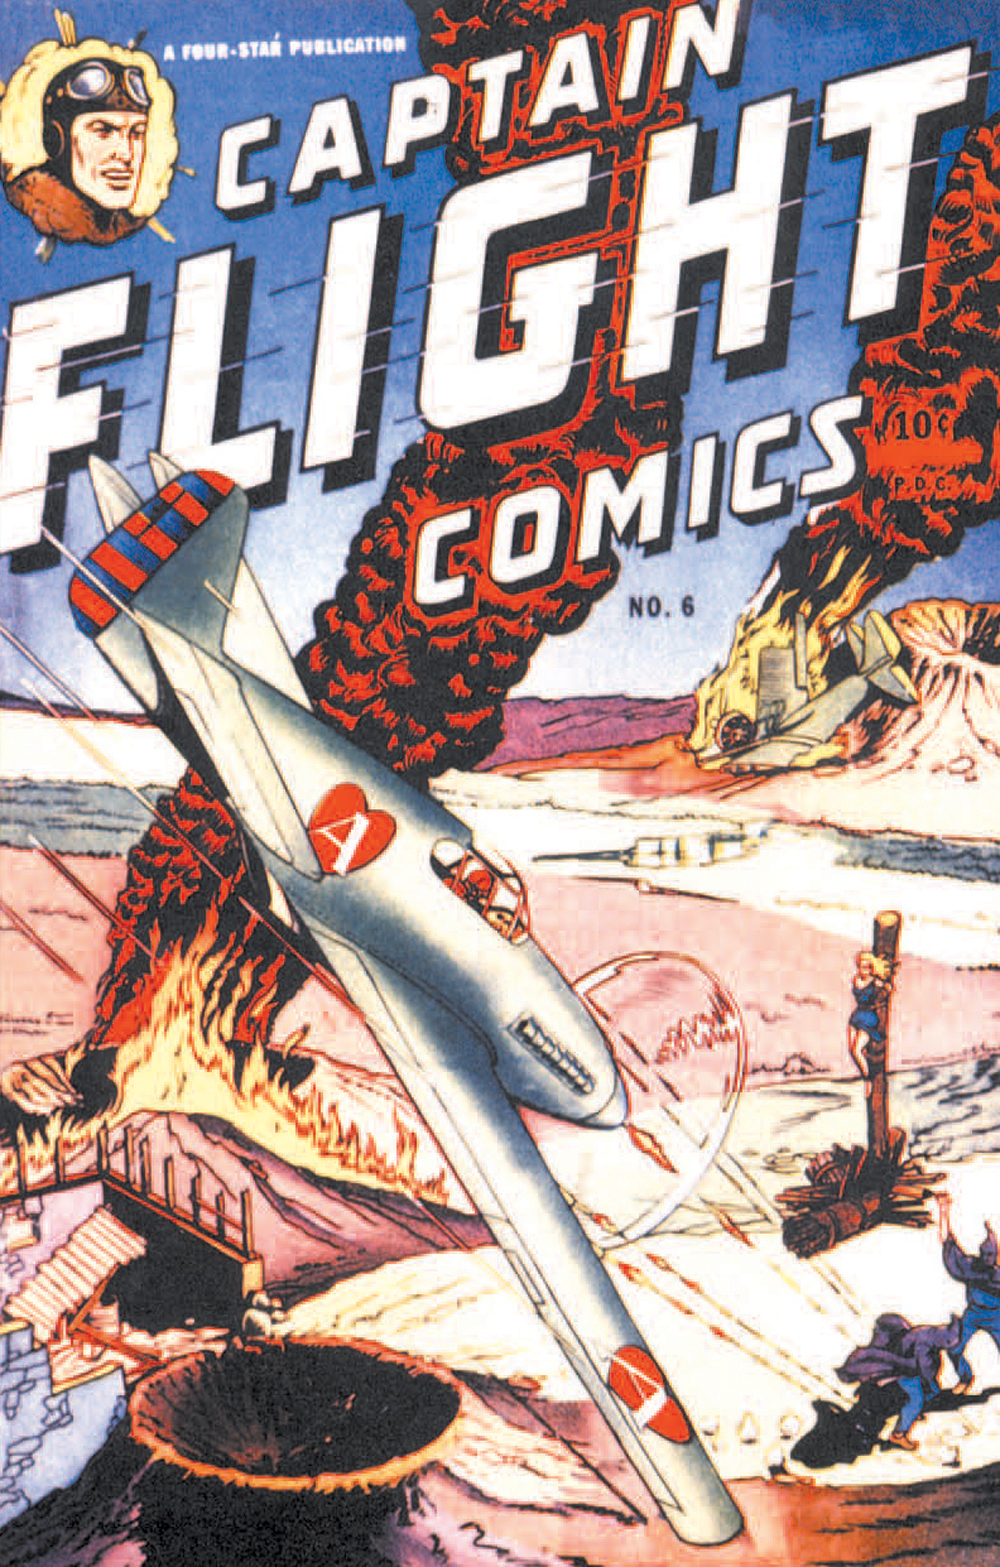 Comic Book Culture: An Illustrated History Reprinted from Oct 2001 – Airport Journals